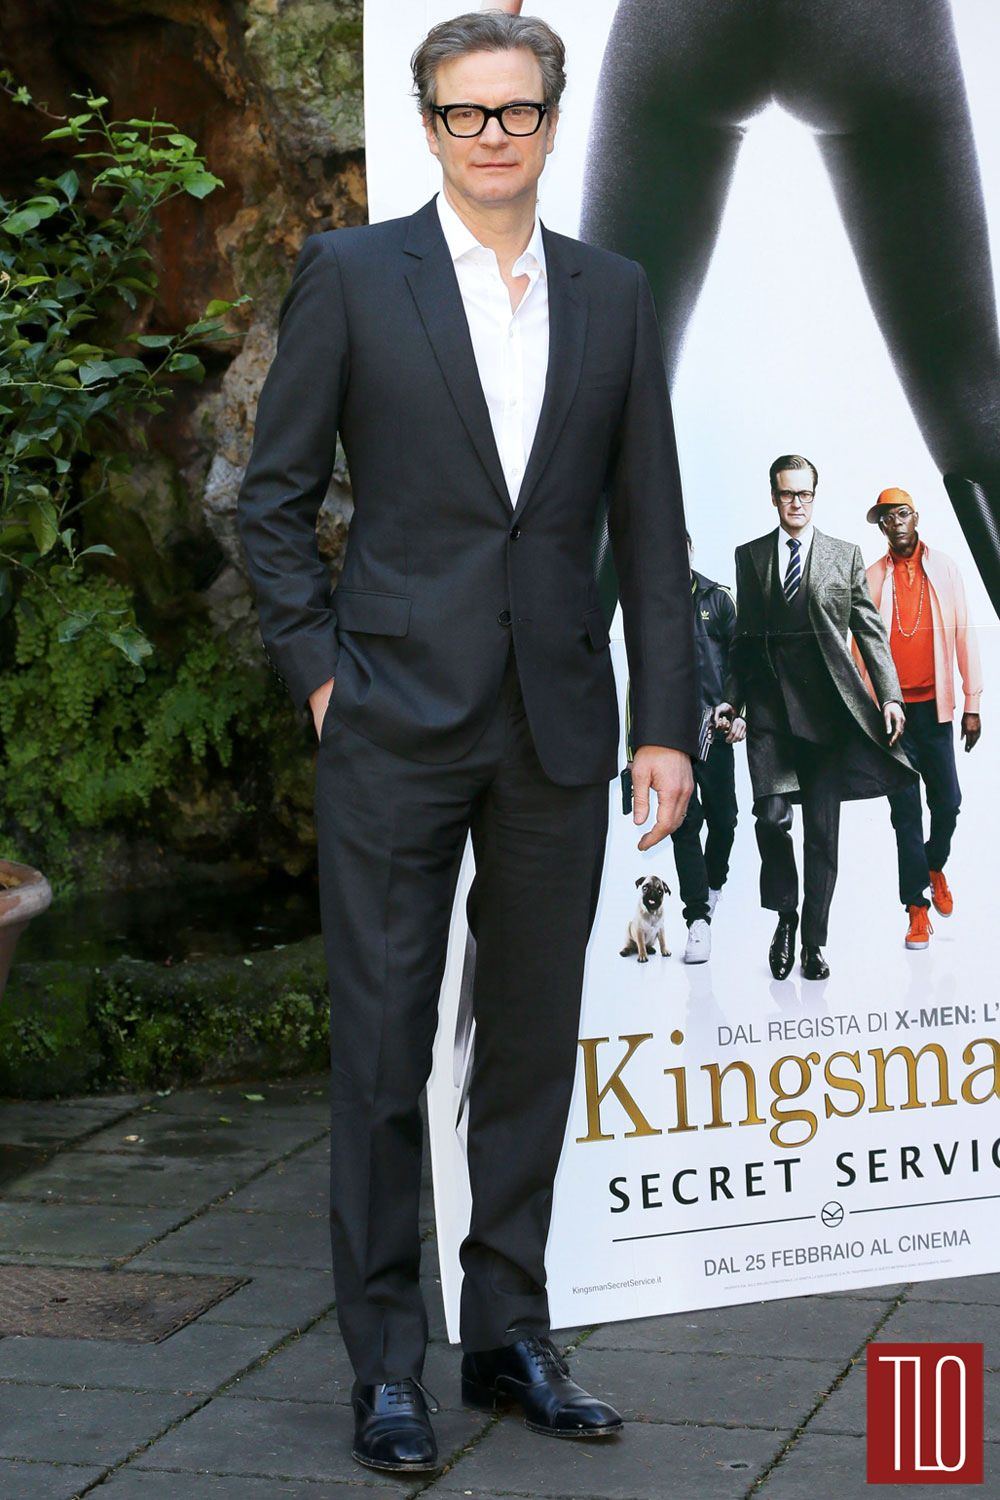 Colin-Firth-Kingsman-The-Secret-Service-Rome-Photocall-Tom-Lorenzo-Site-TLO (1)